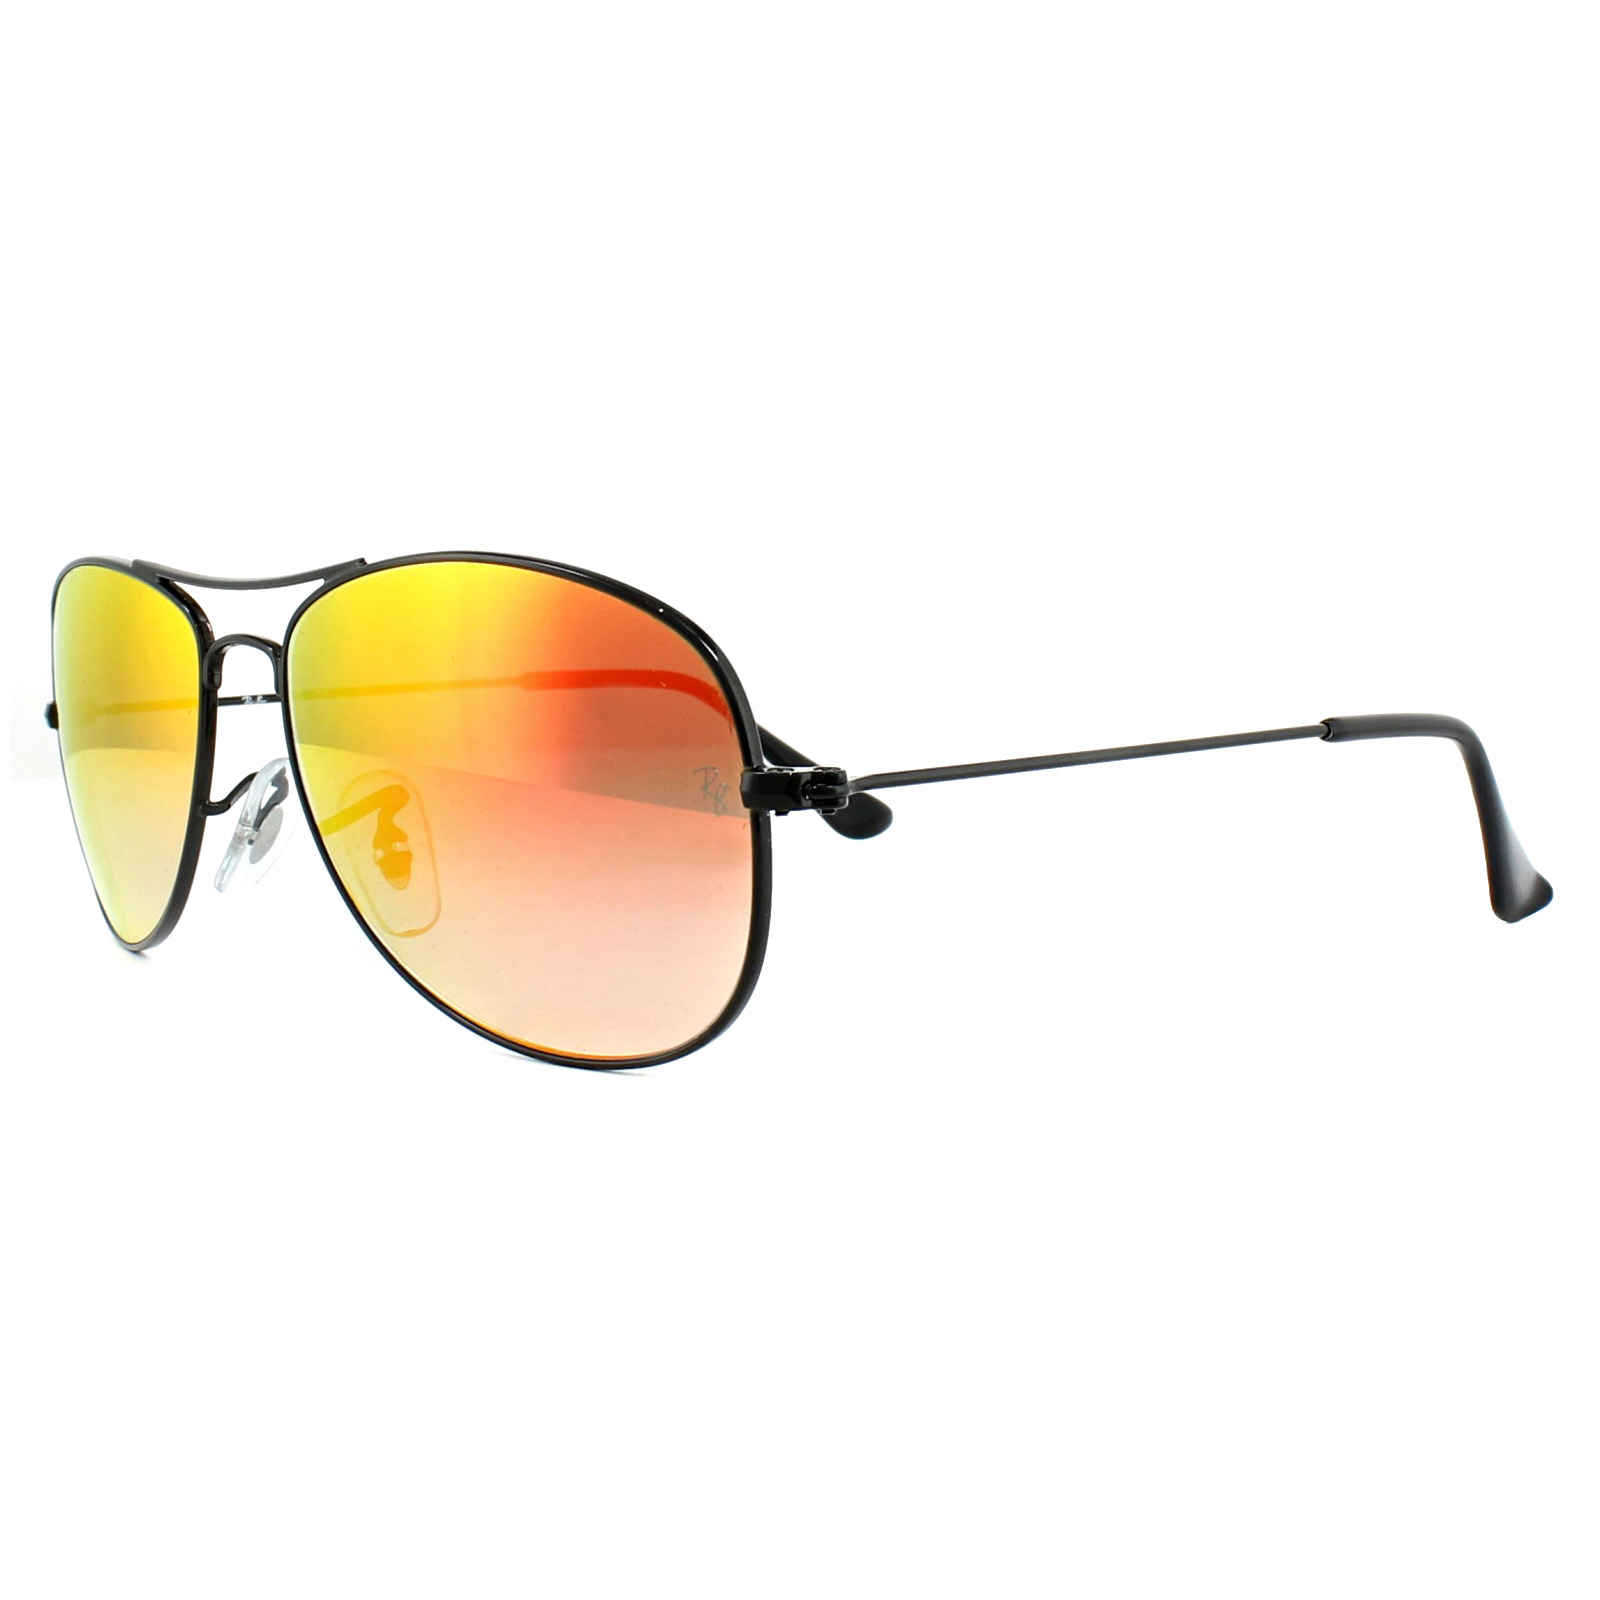 28cced1a26 Sentinel Ray-Ban Sunglasses Cockpit 3362 002 4W Black Orange Gradient  Mirror 56mm